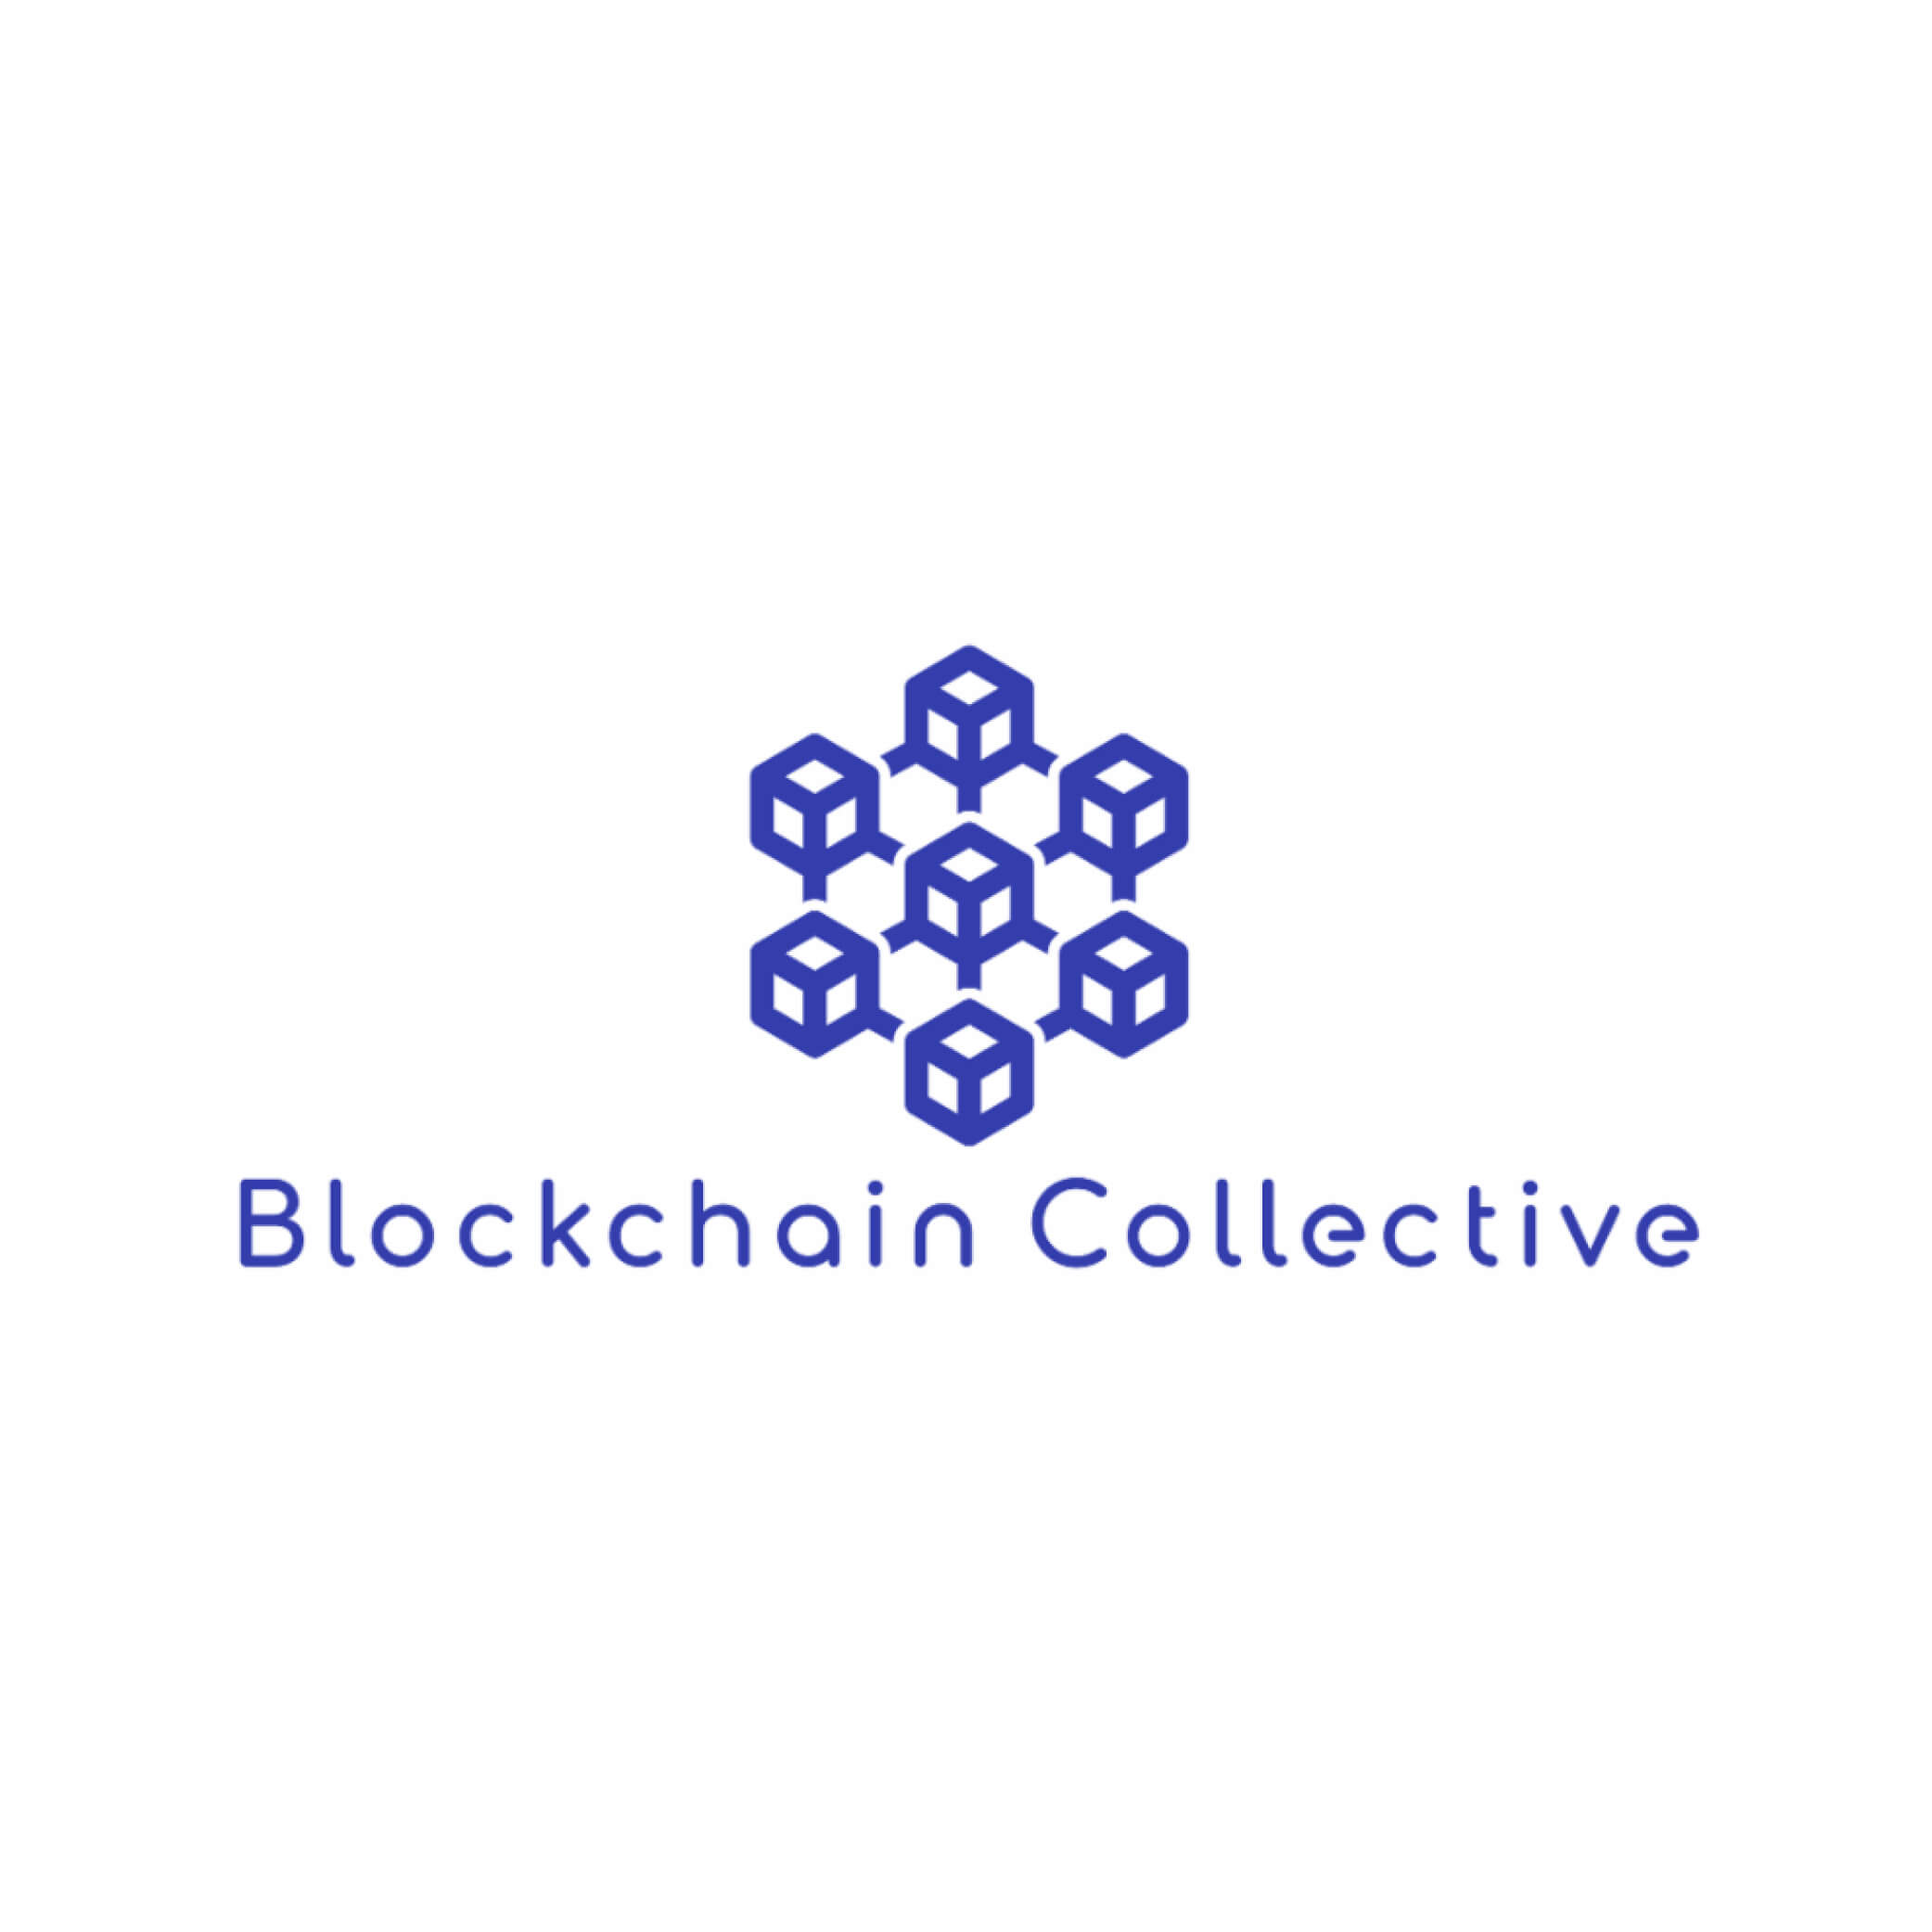 Blockchain-Collective-Portfolio